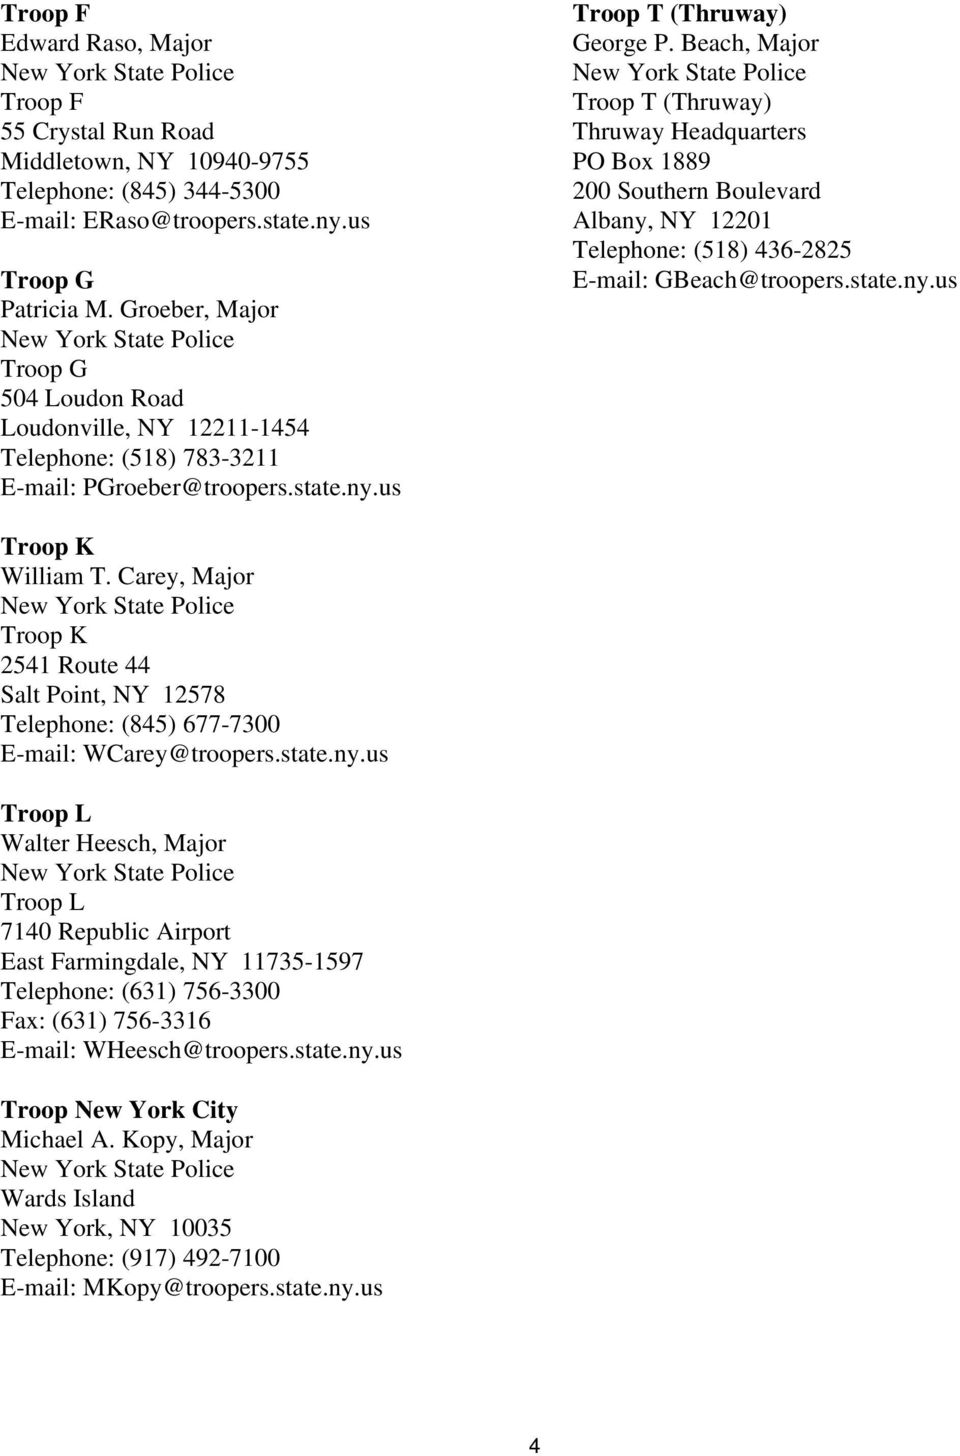 DIRECTORY of New York State Criminal Justice Agencies - PDF